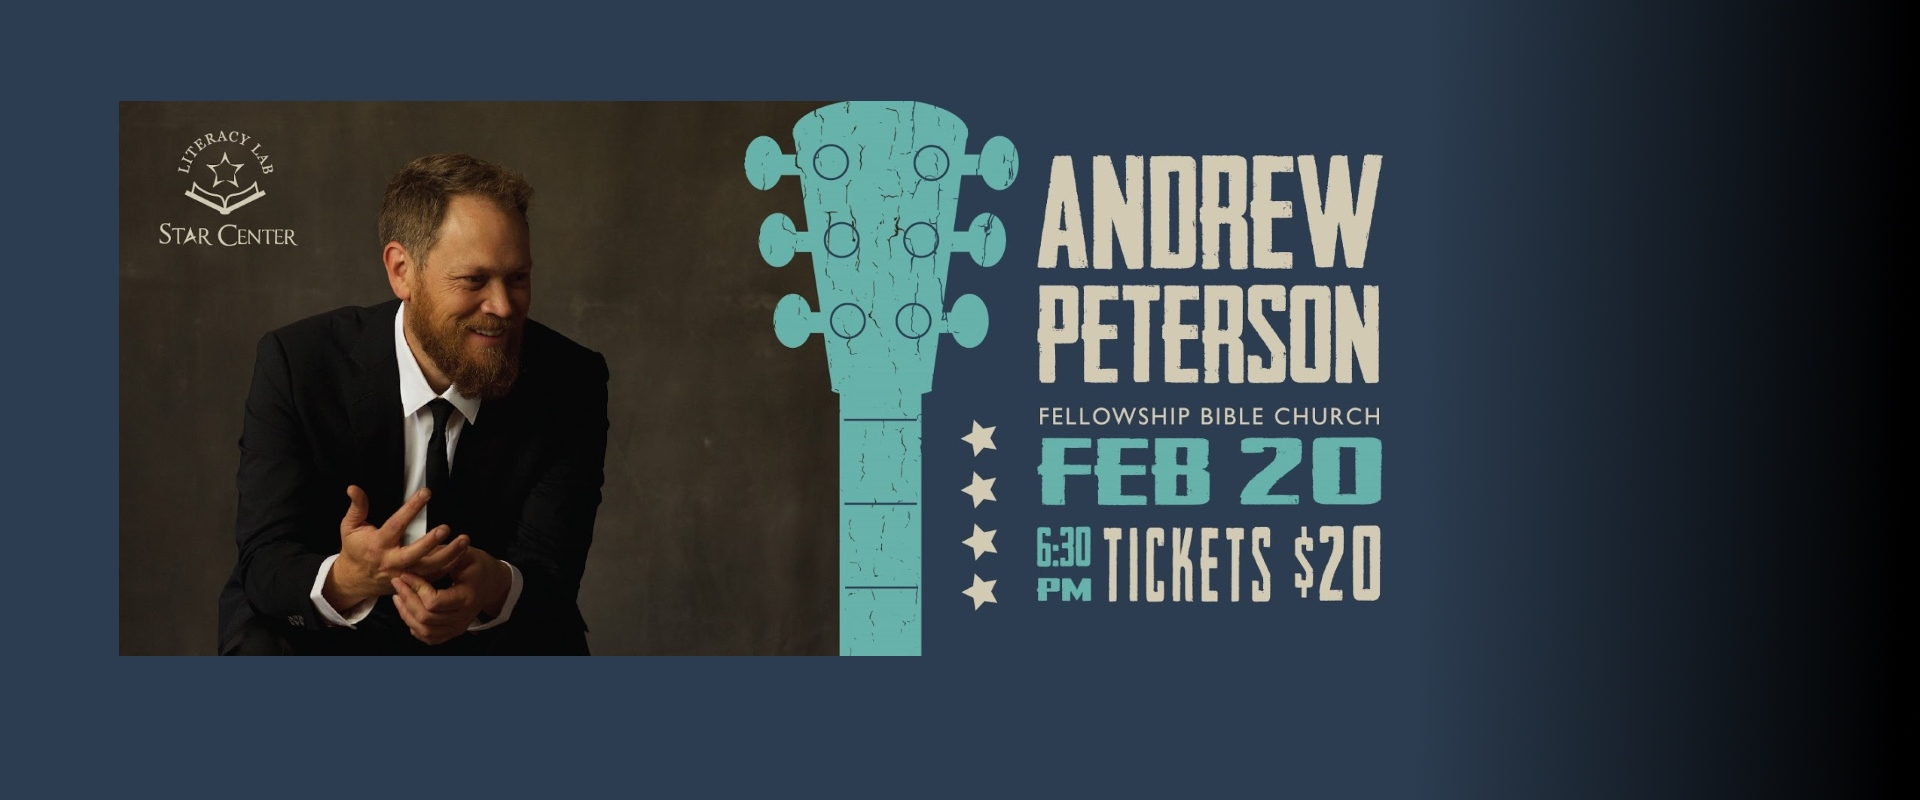 Andrew Peterson Feb 20 630PM Tickets $20